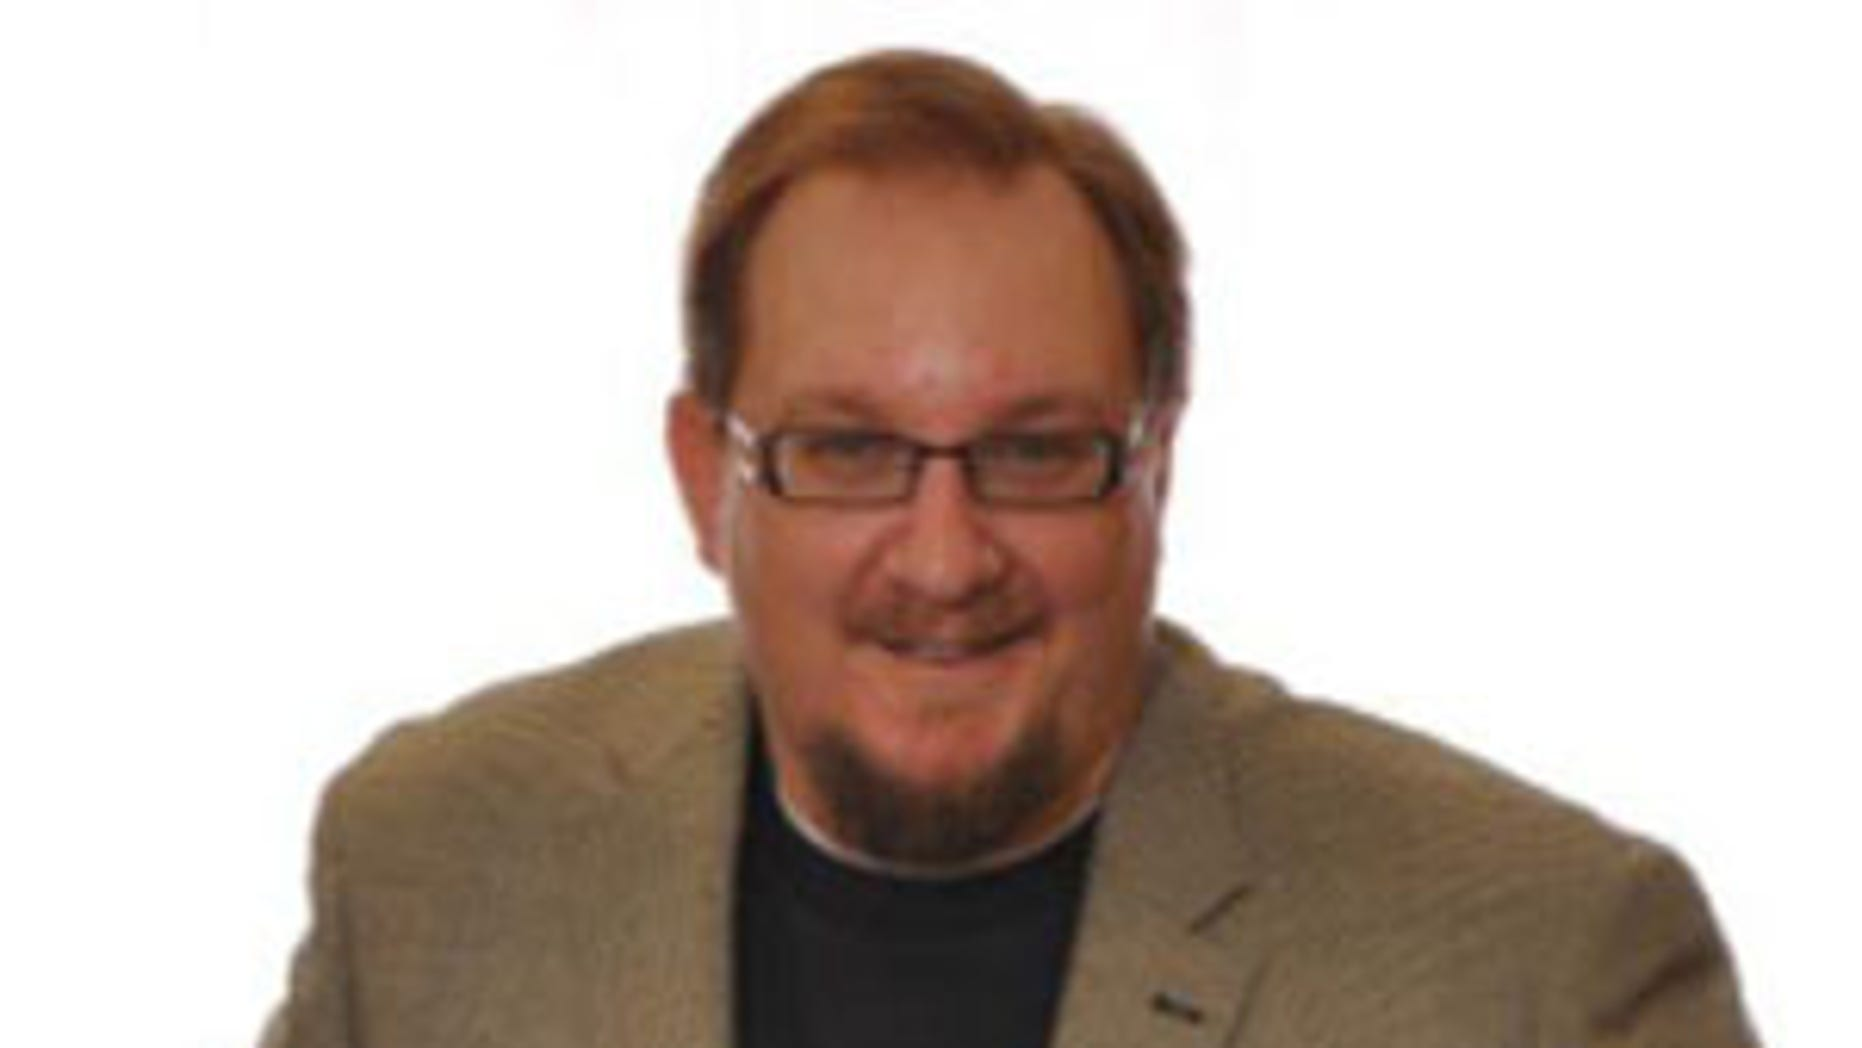 Ethan Schmidt was an Assistant Professor of American History at Delta State University in Mississippi.